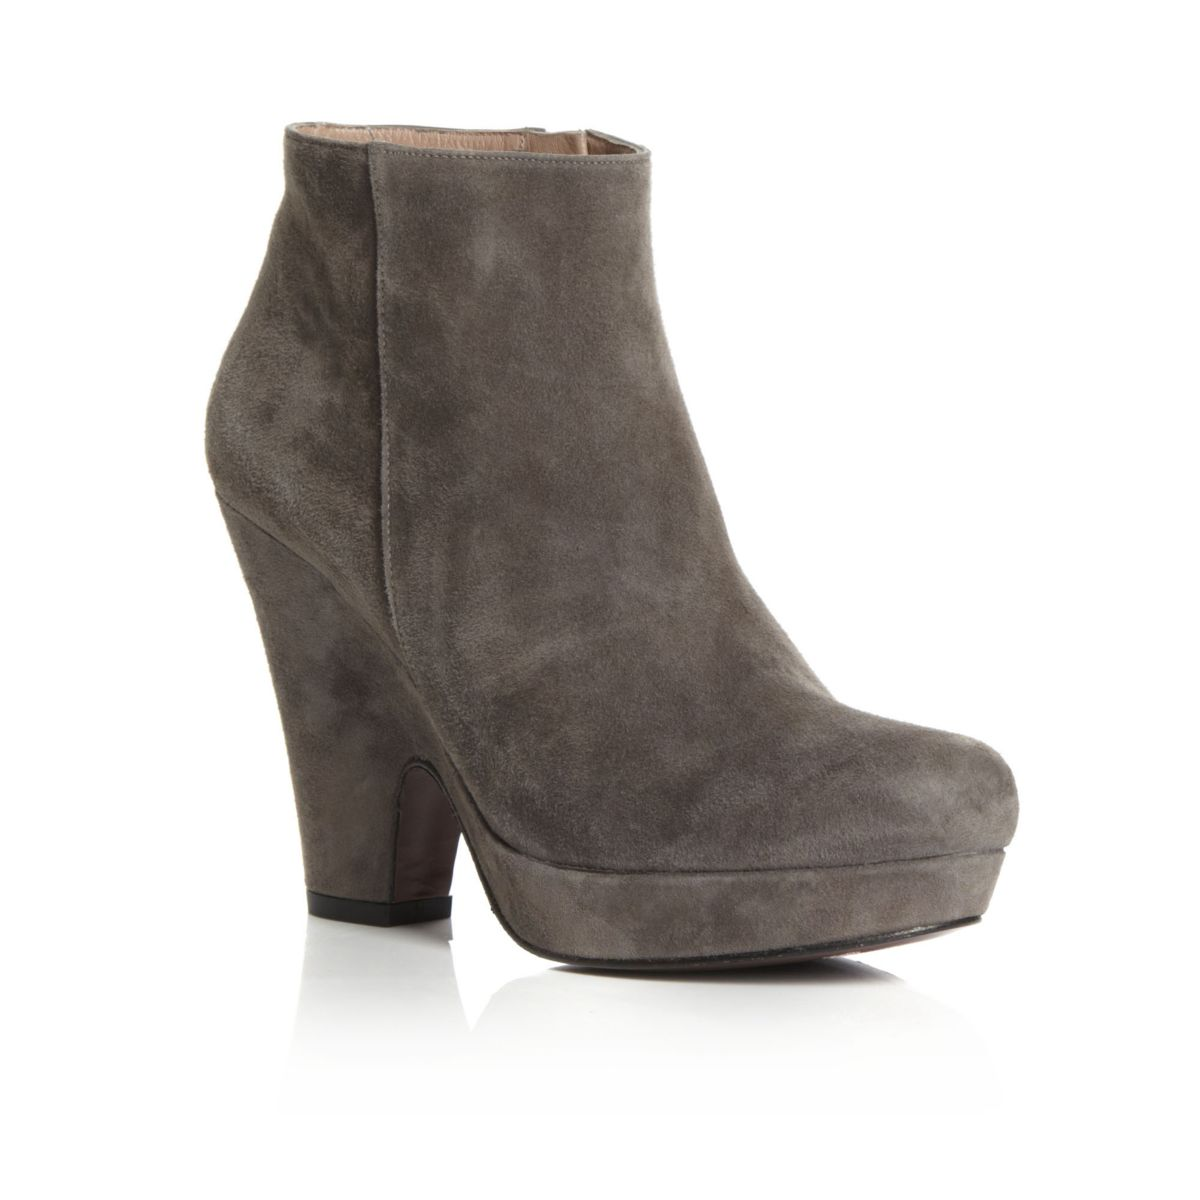 NEW-PIED-A-TERRE-SYMONS-TAUPE-GREY-SUEDE-LADIES-HEEL-WOMENS-ANKLE-BOOTS-SIZE-3-8